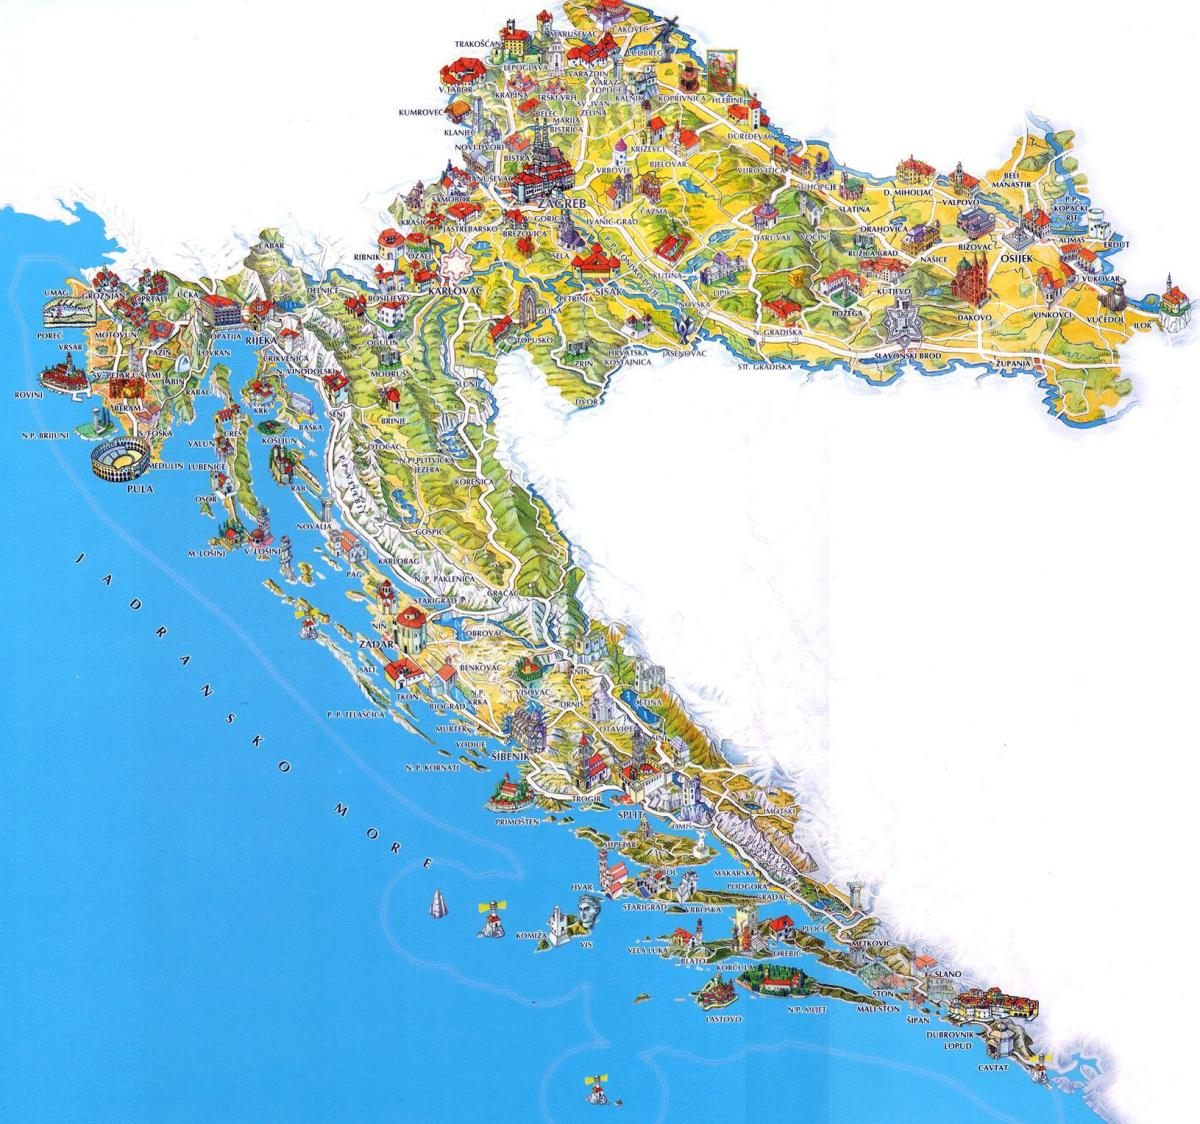 croatia tourist attractions map